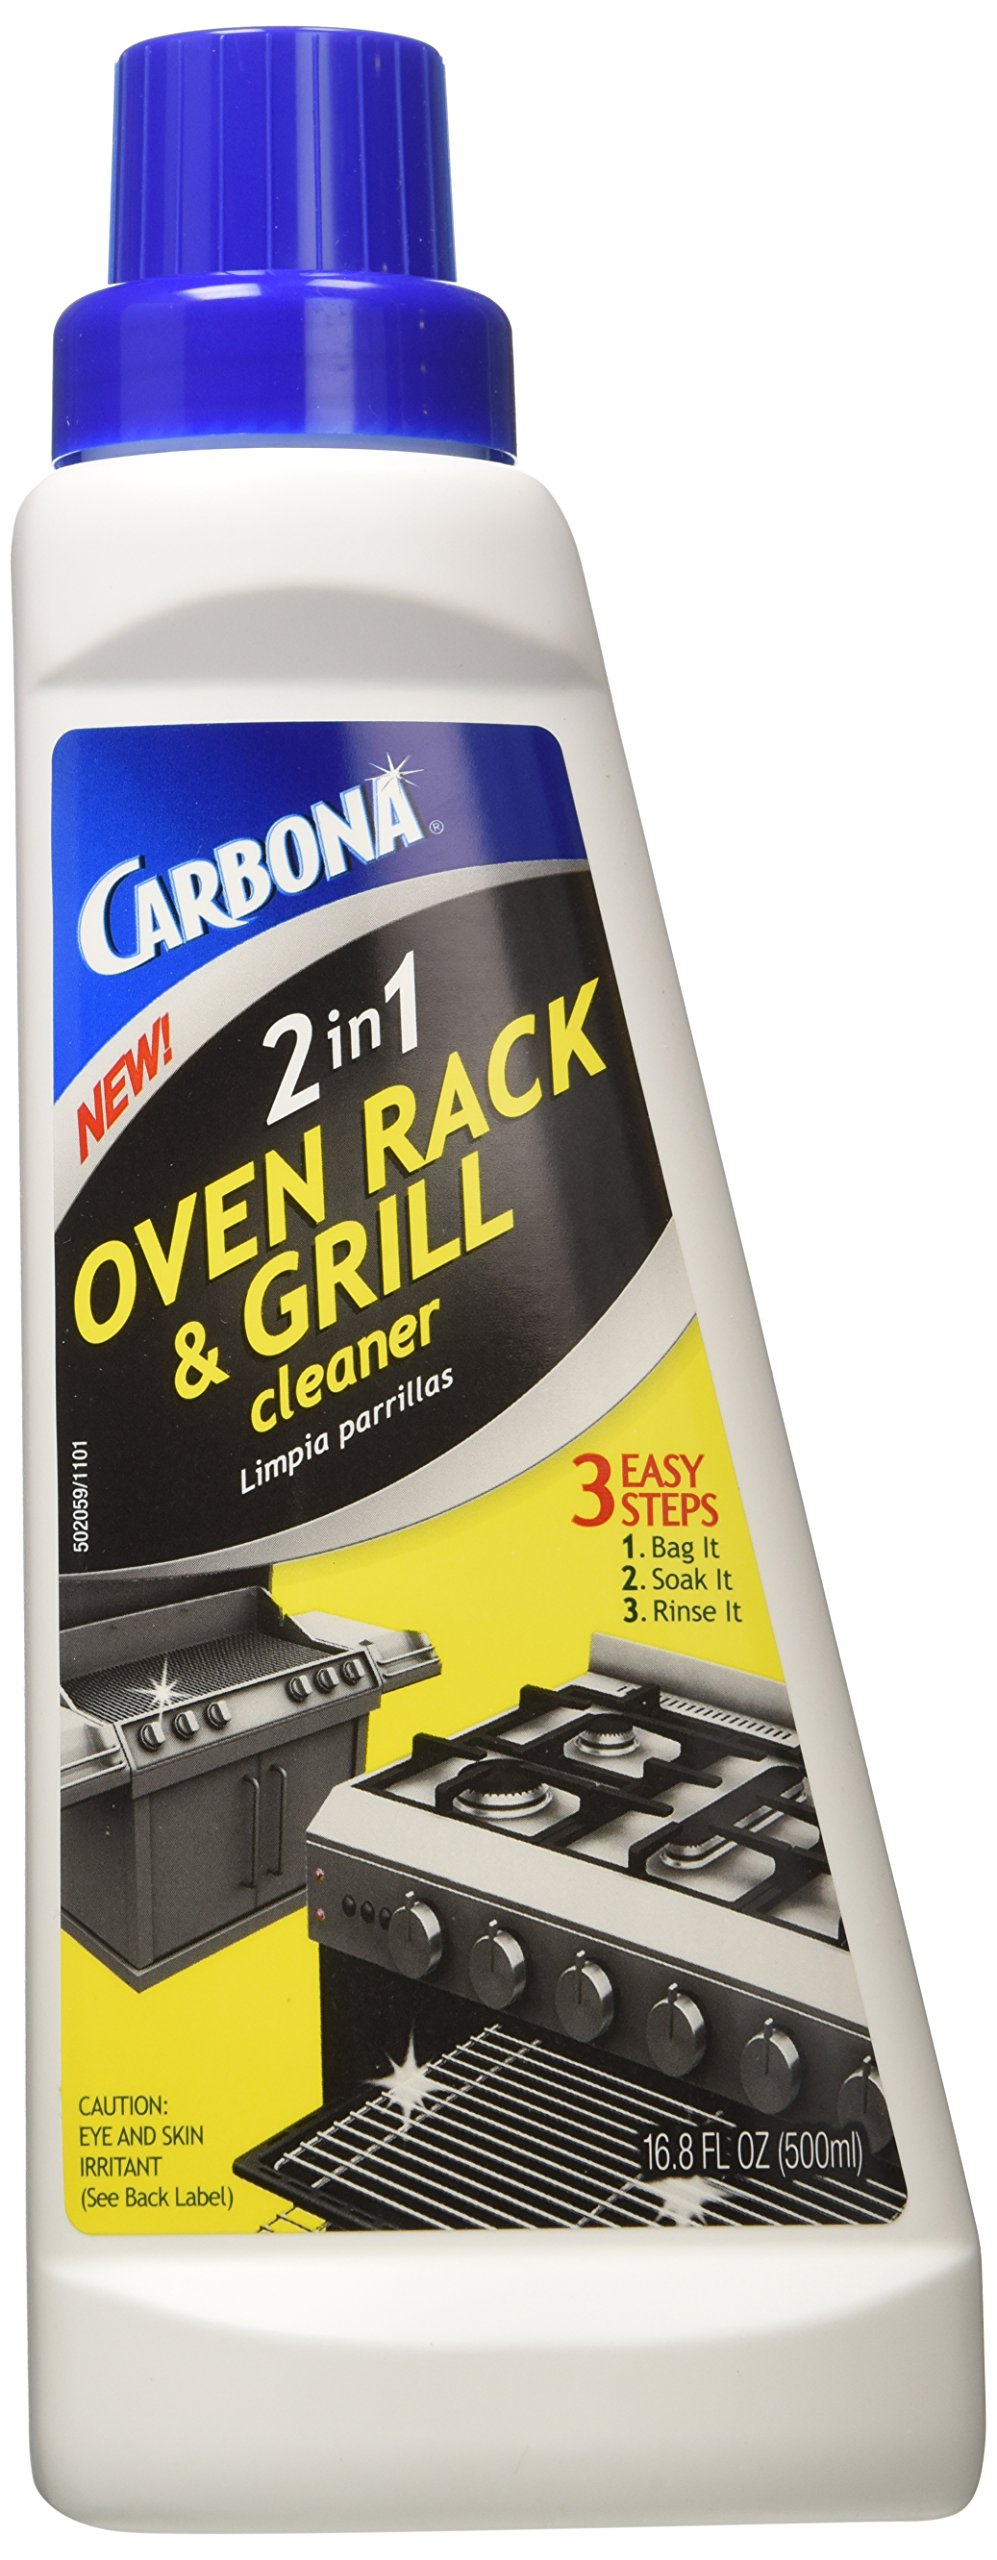 Amazon Com Carbona 2 In 1 Oven Rack And Grill Cleaner